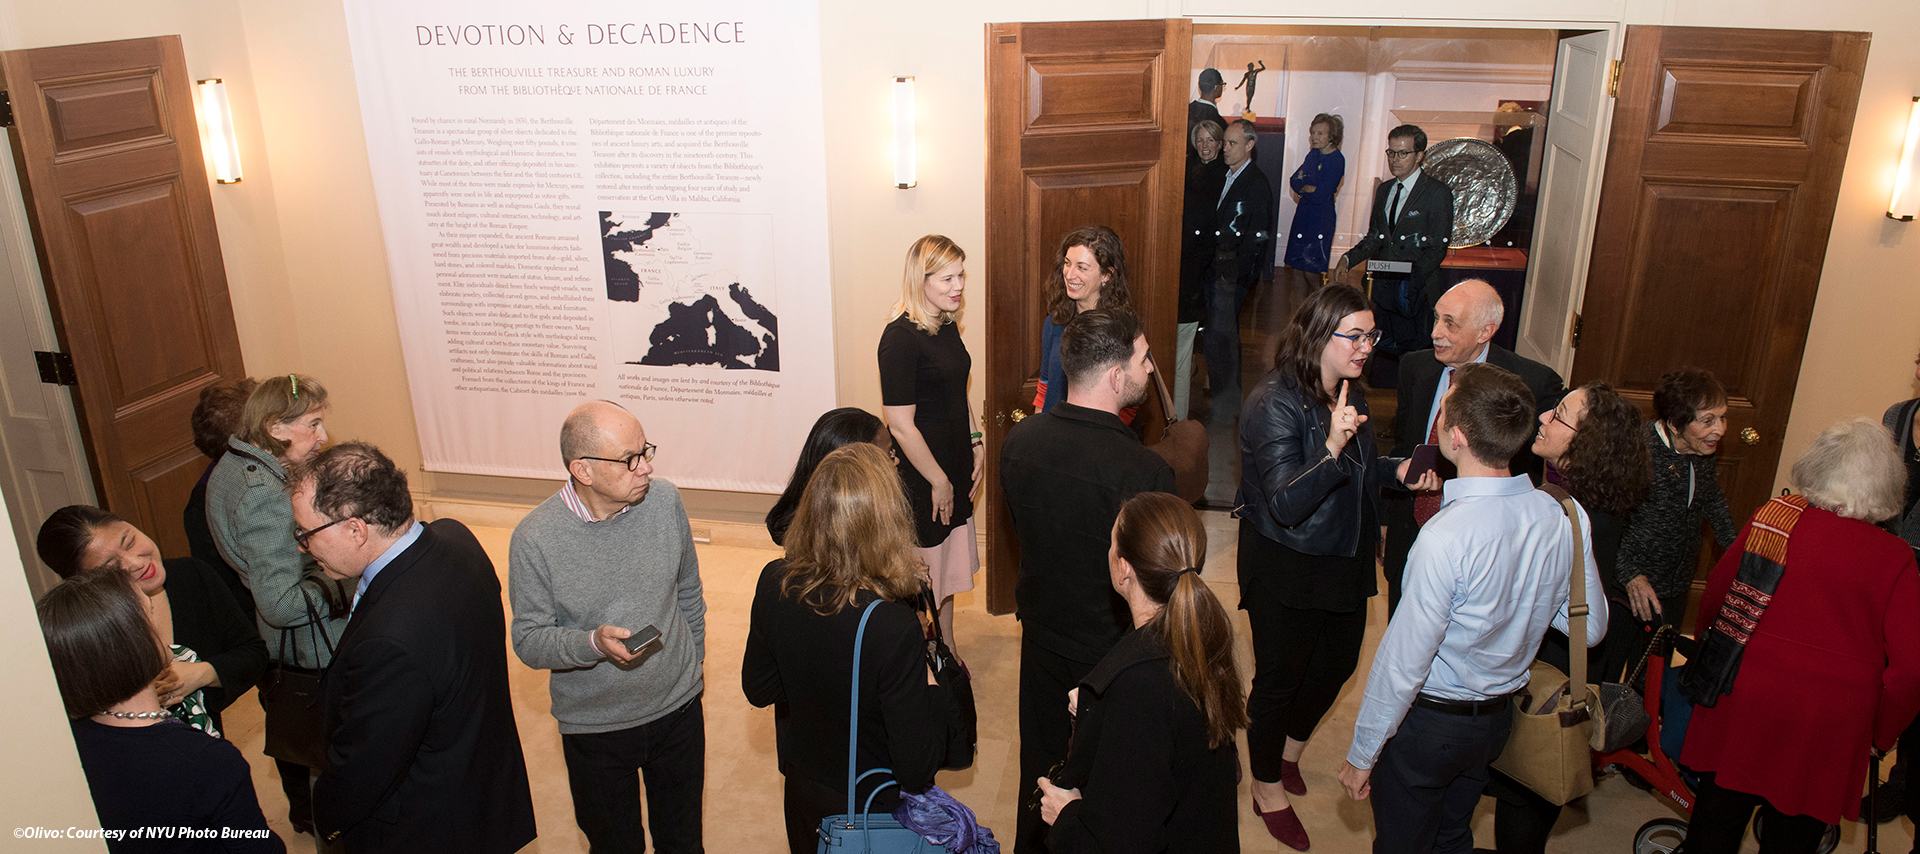 Image of a crowd mingling at the reception for the opening of the Devotion and Decadence show